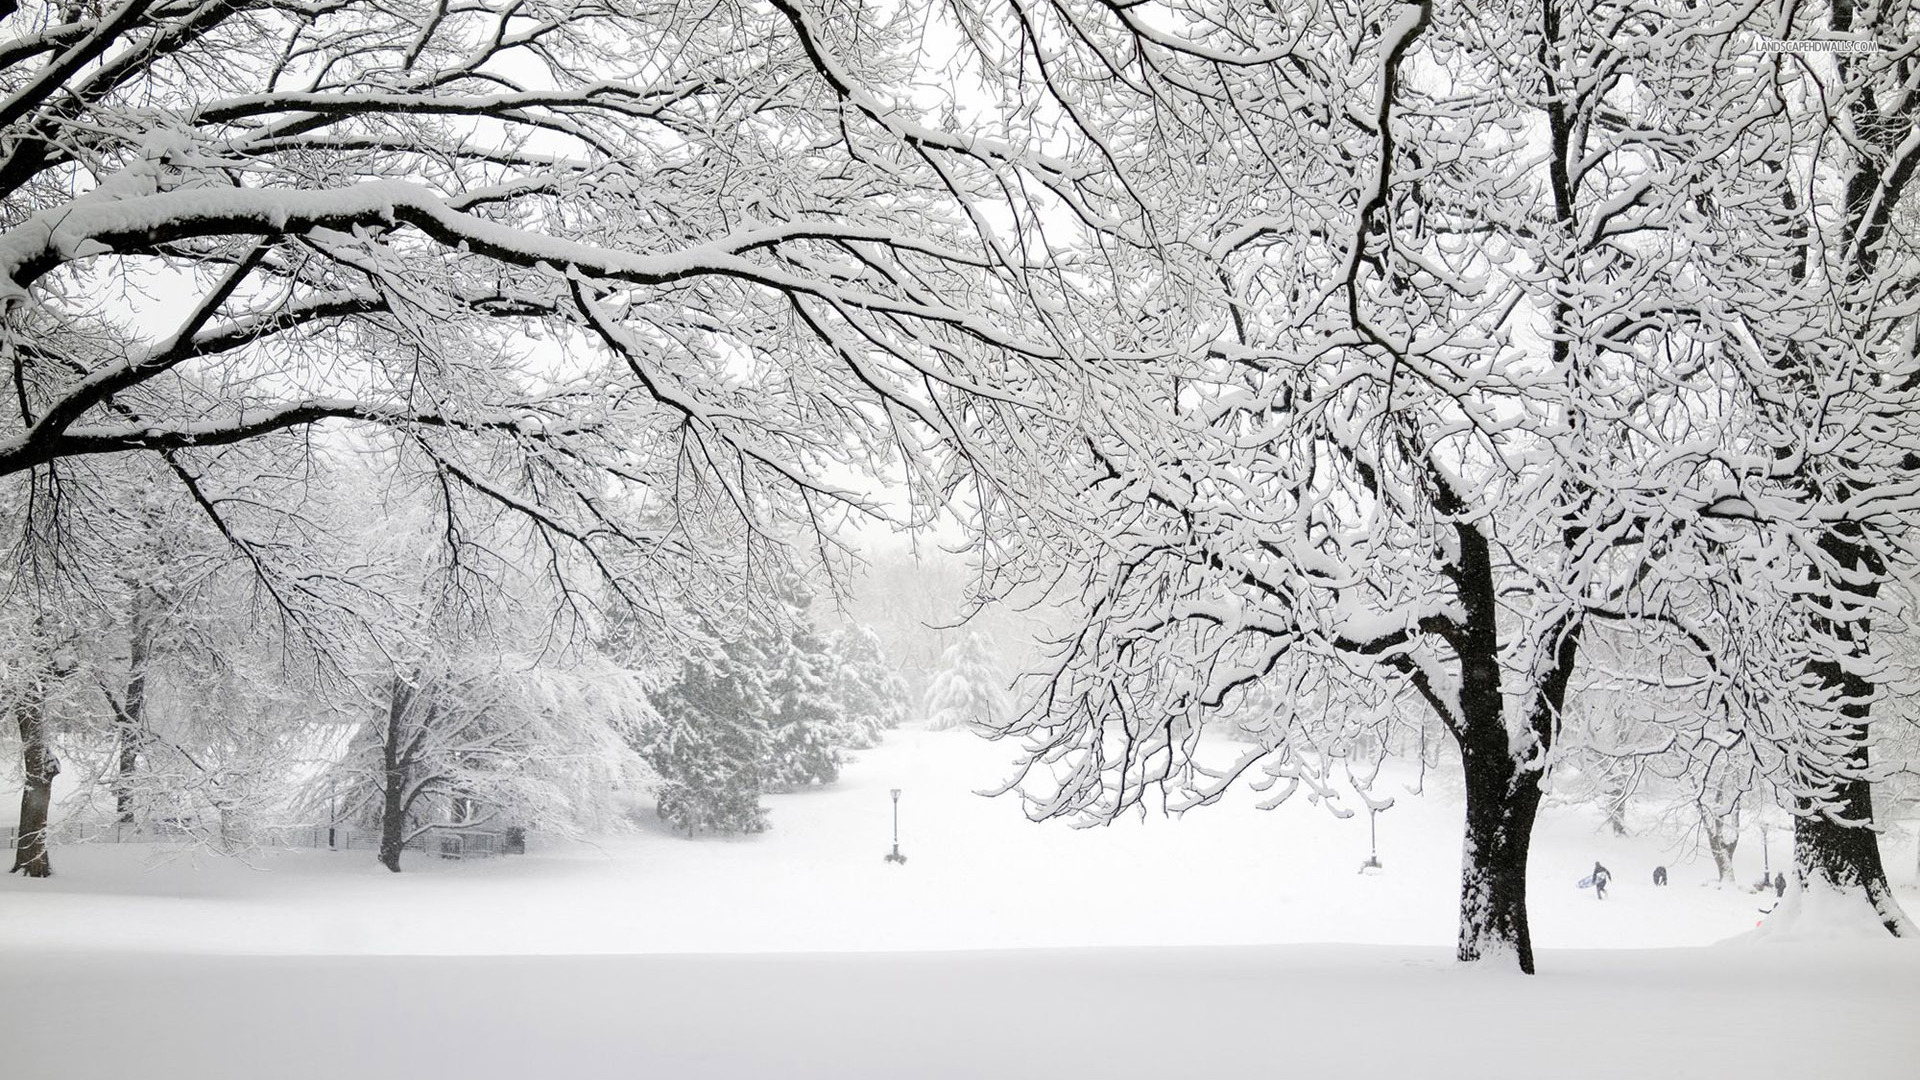 SnowCovered Trees in Winter HD Wallpaper  Background